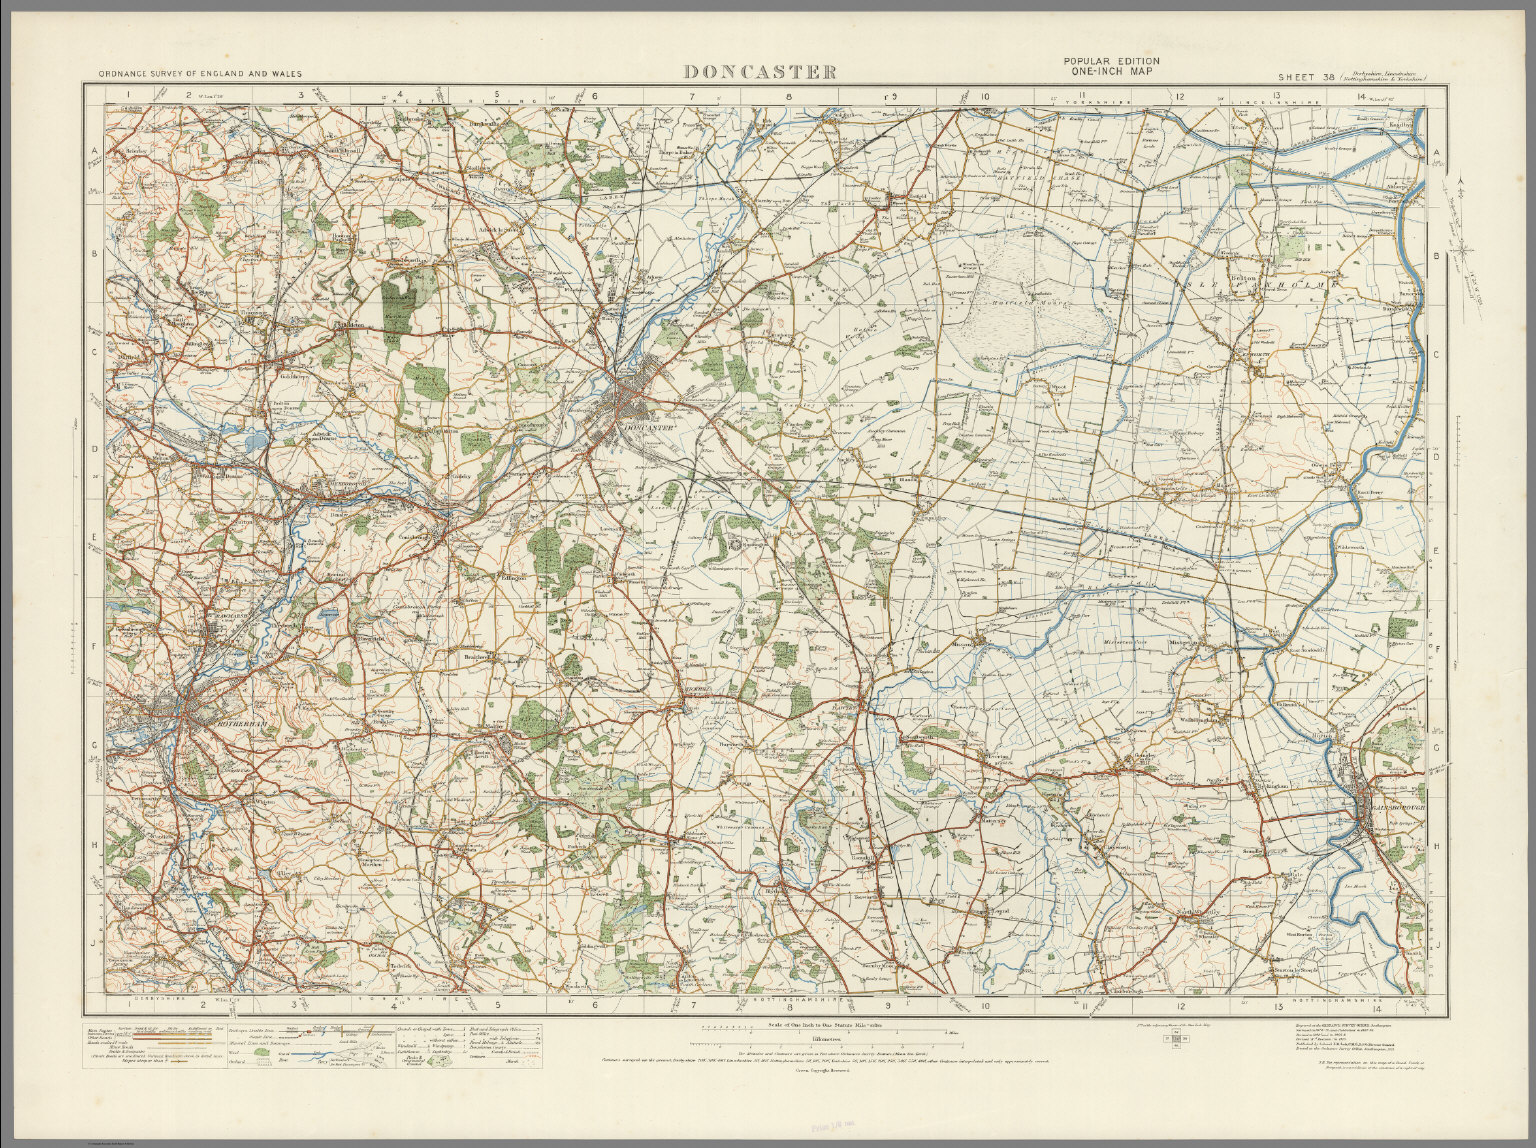 Sheet 38. Doncaster. - David Rumsey Historical Map Collection